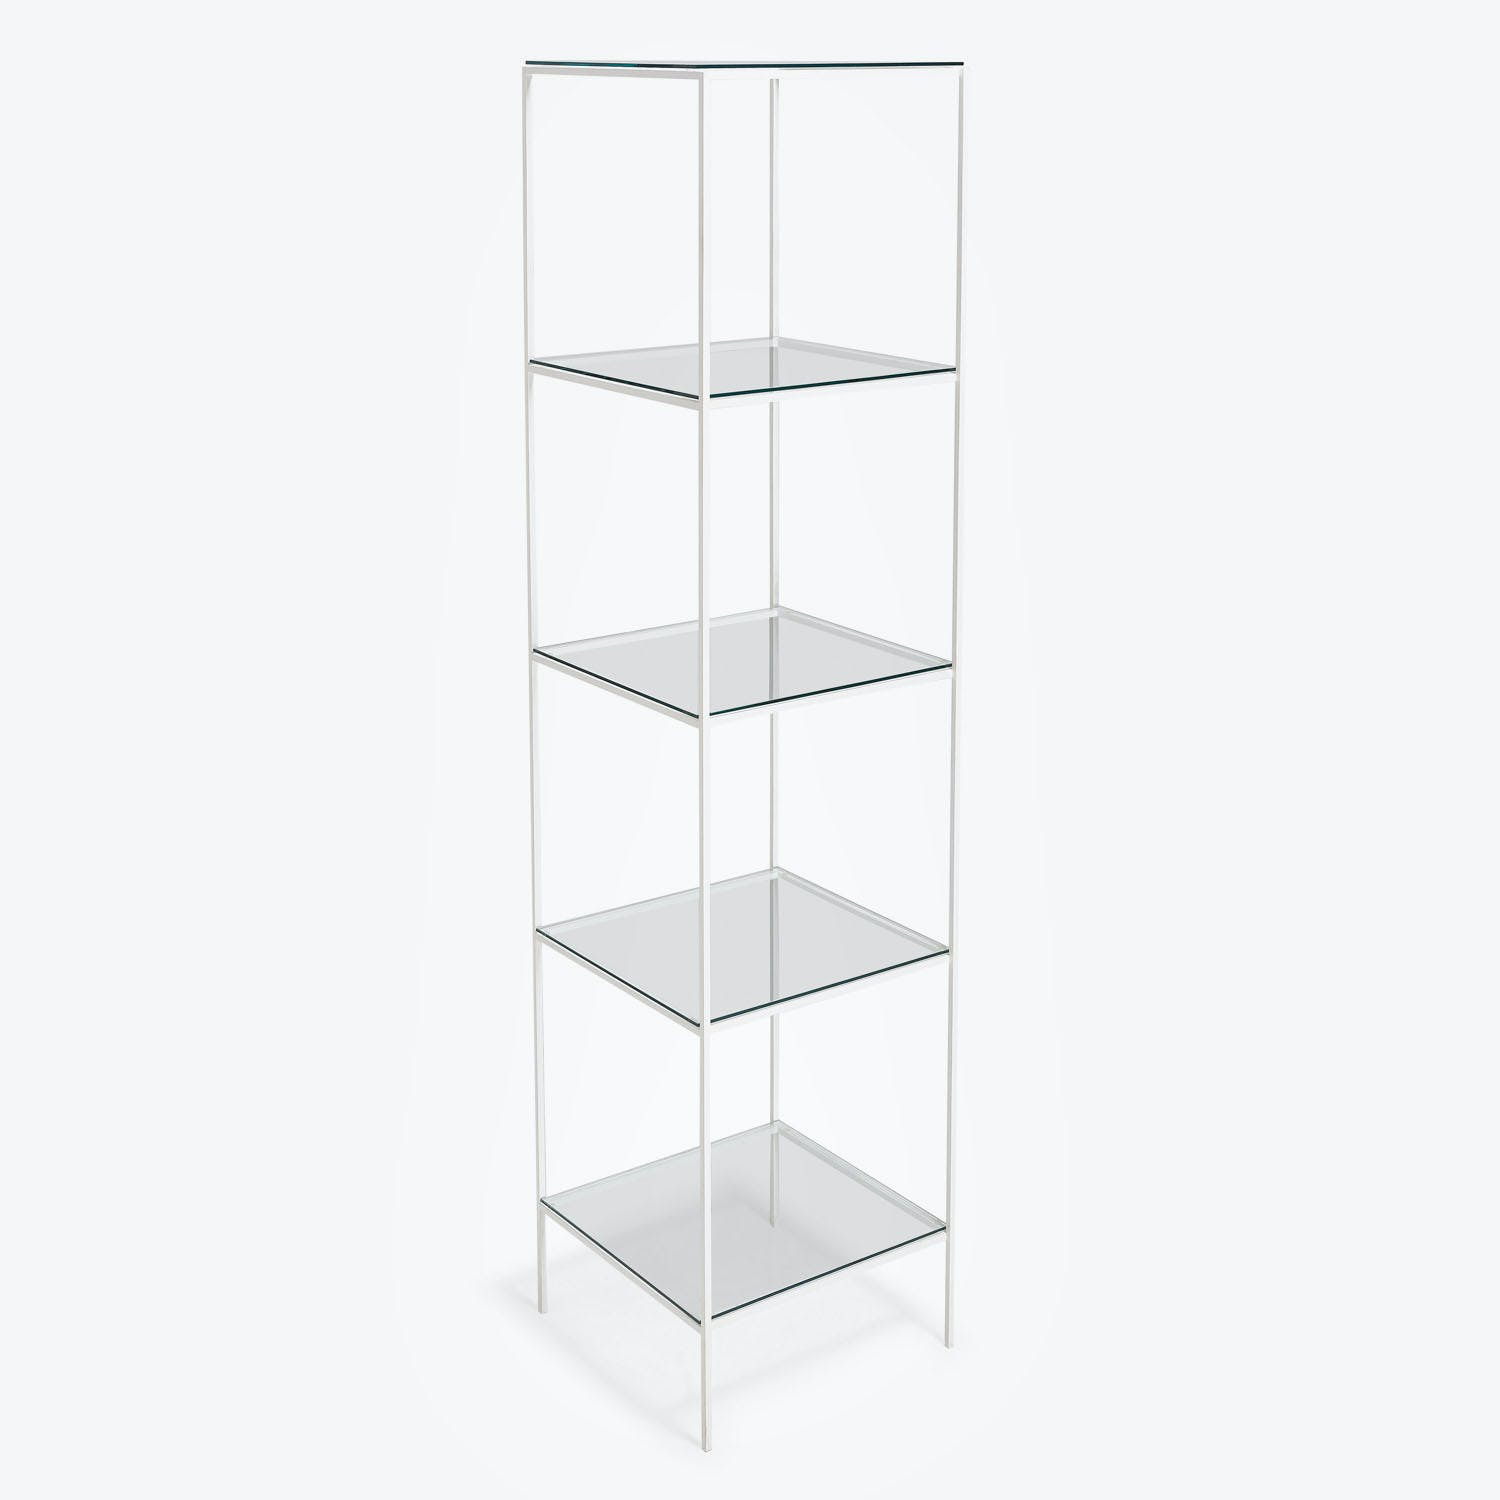 abcDNA Synthesis Glass 5-Tier Narrow Shelving White